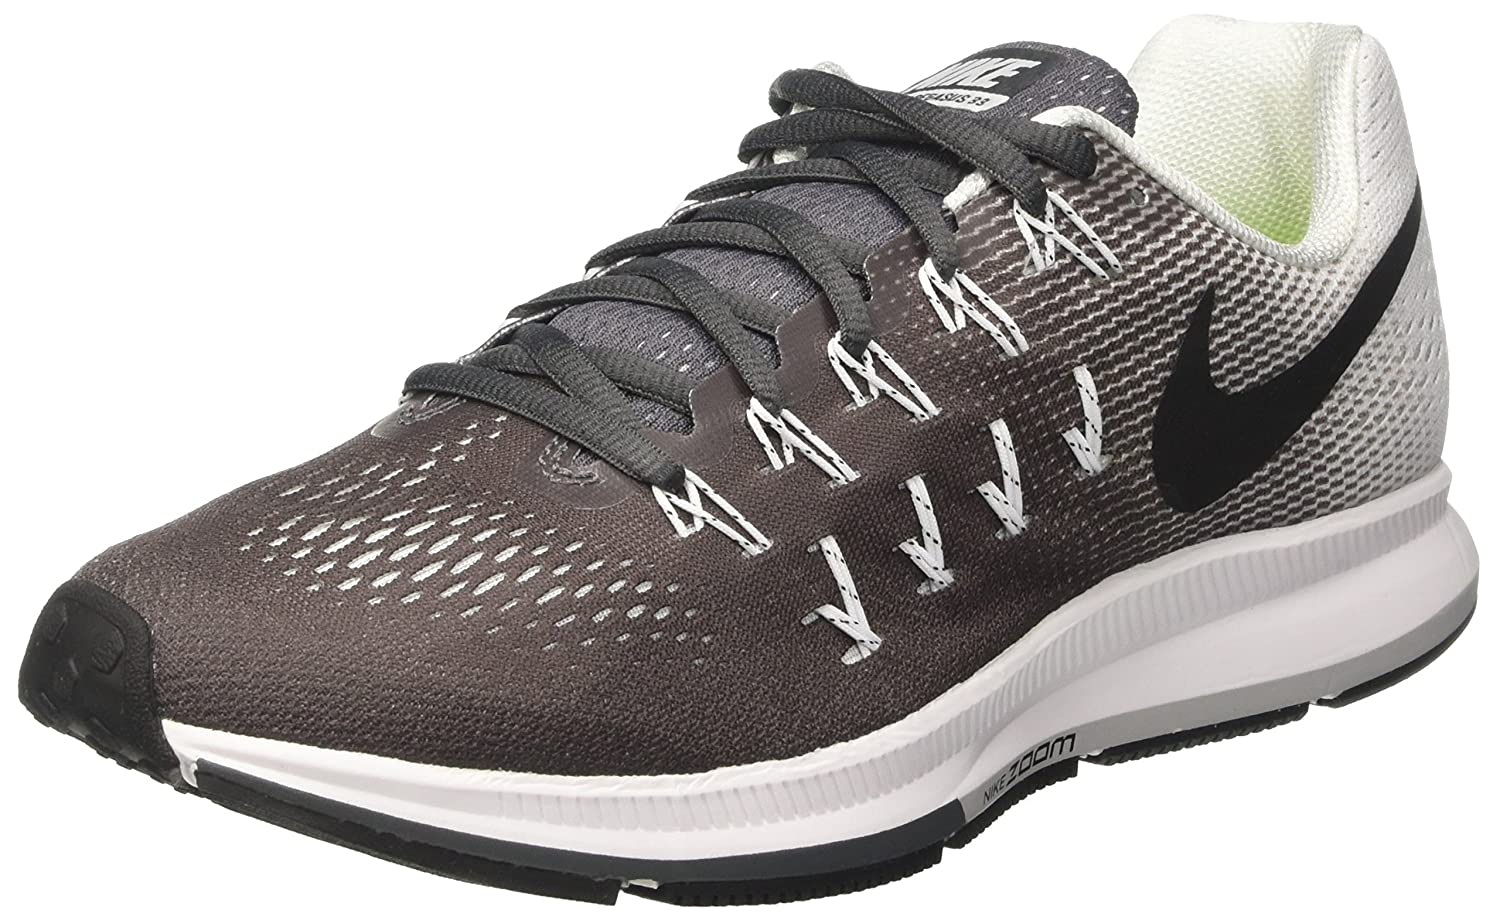 info for 3e26f 689df Nike Men's Air Zoom Pegasus 33, Dark Grey / Black - White - 9 D(M) US